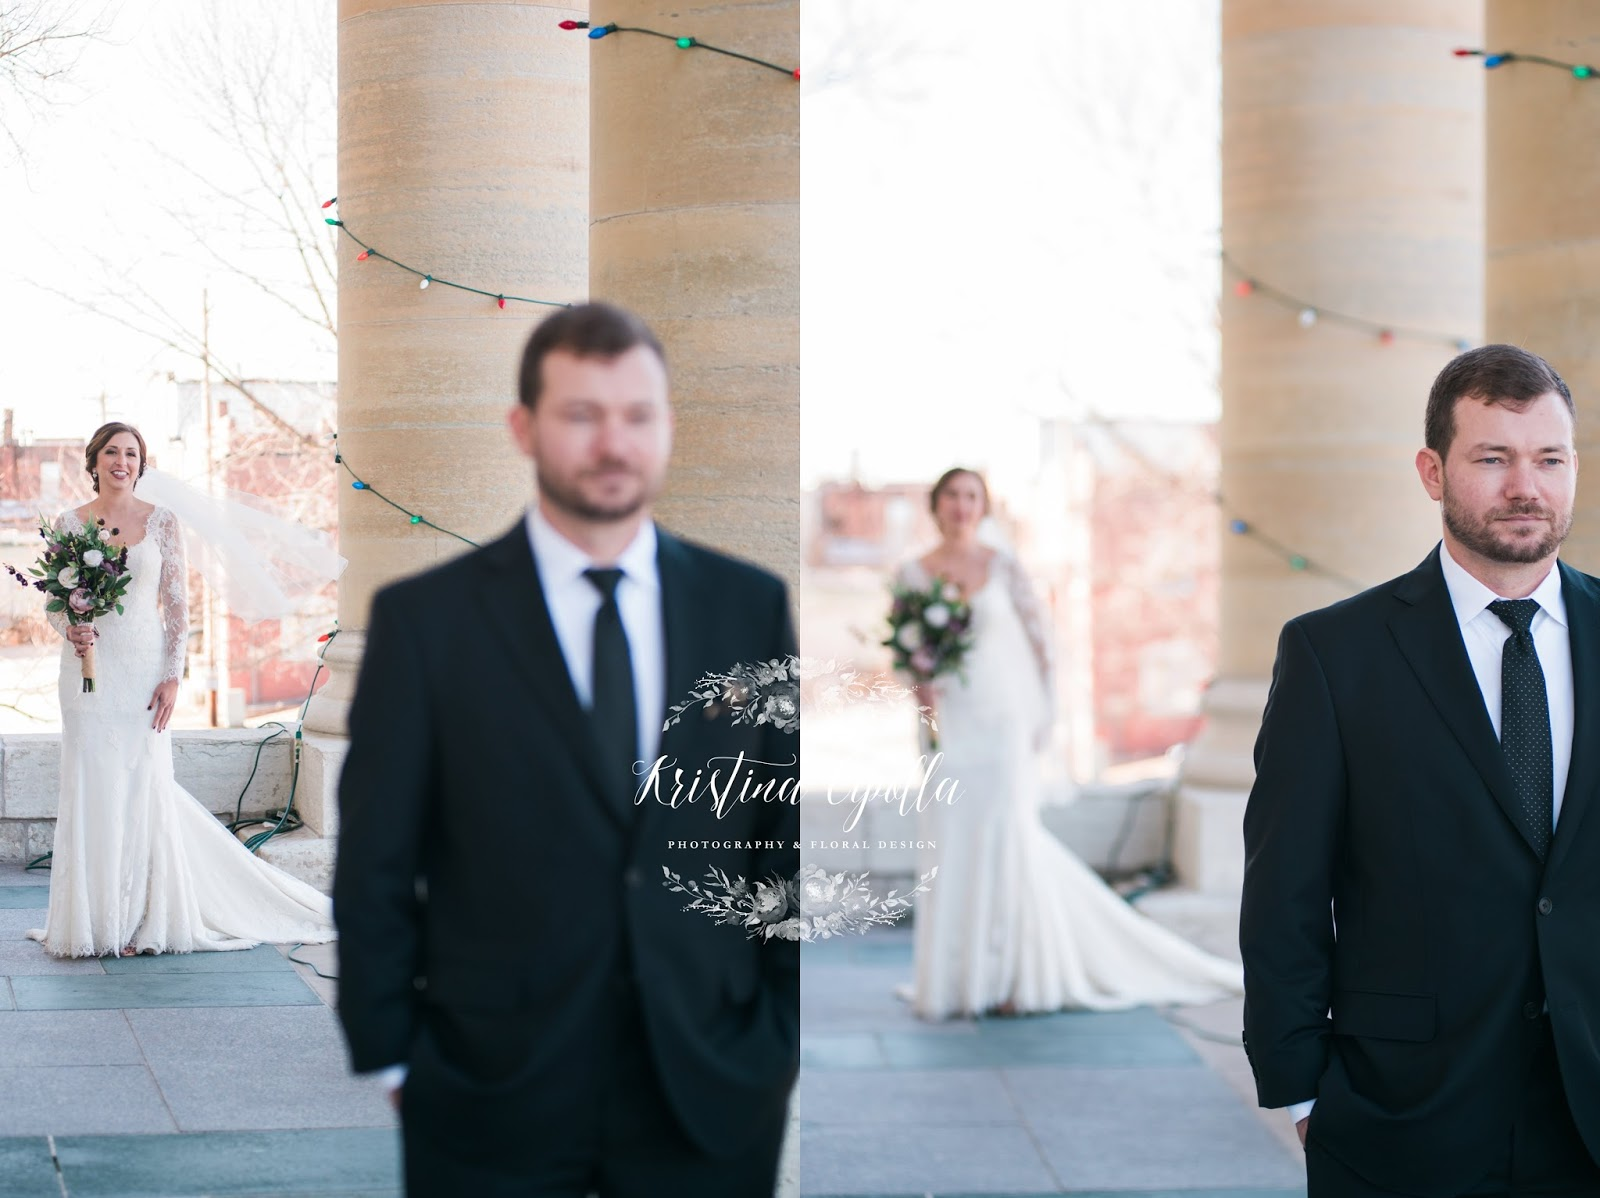 Kristina Cipolla Photography: Bethany & Matt MARRIED - St. Louis ...